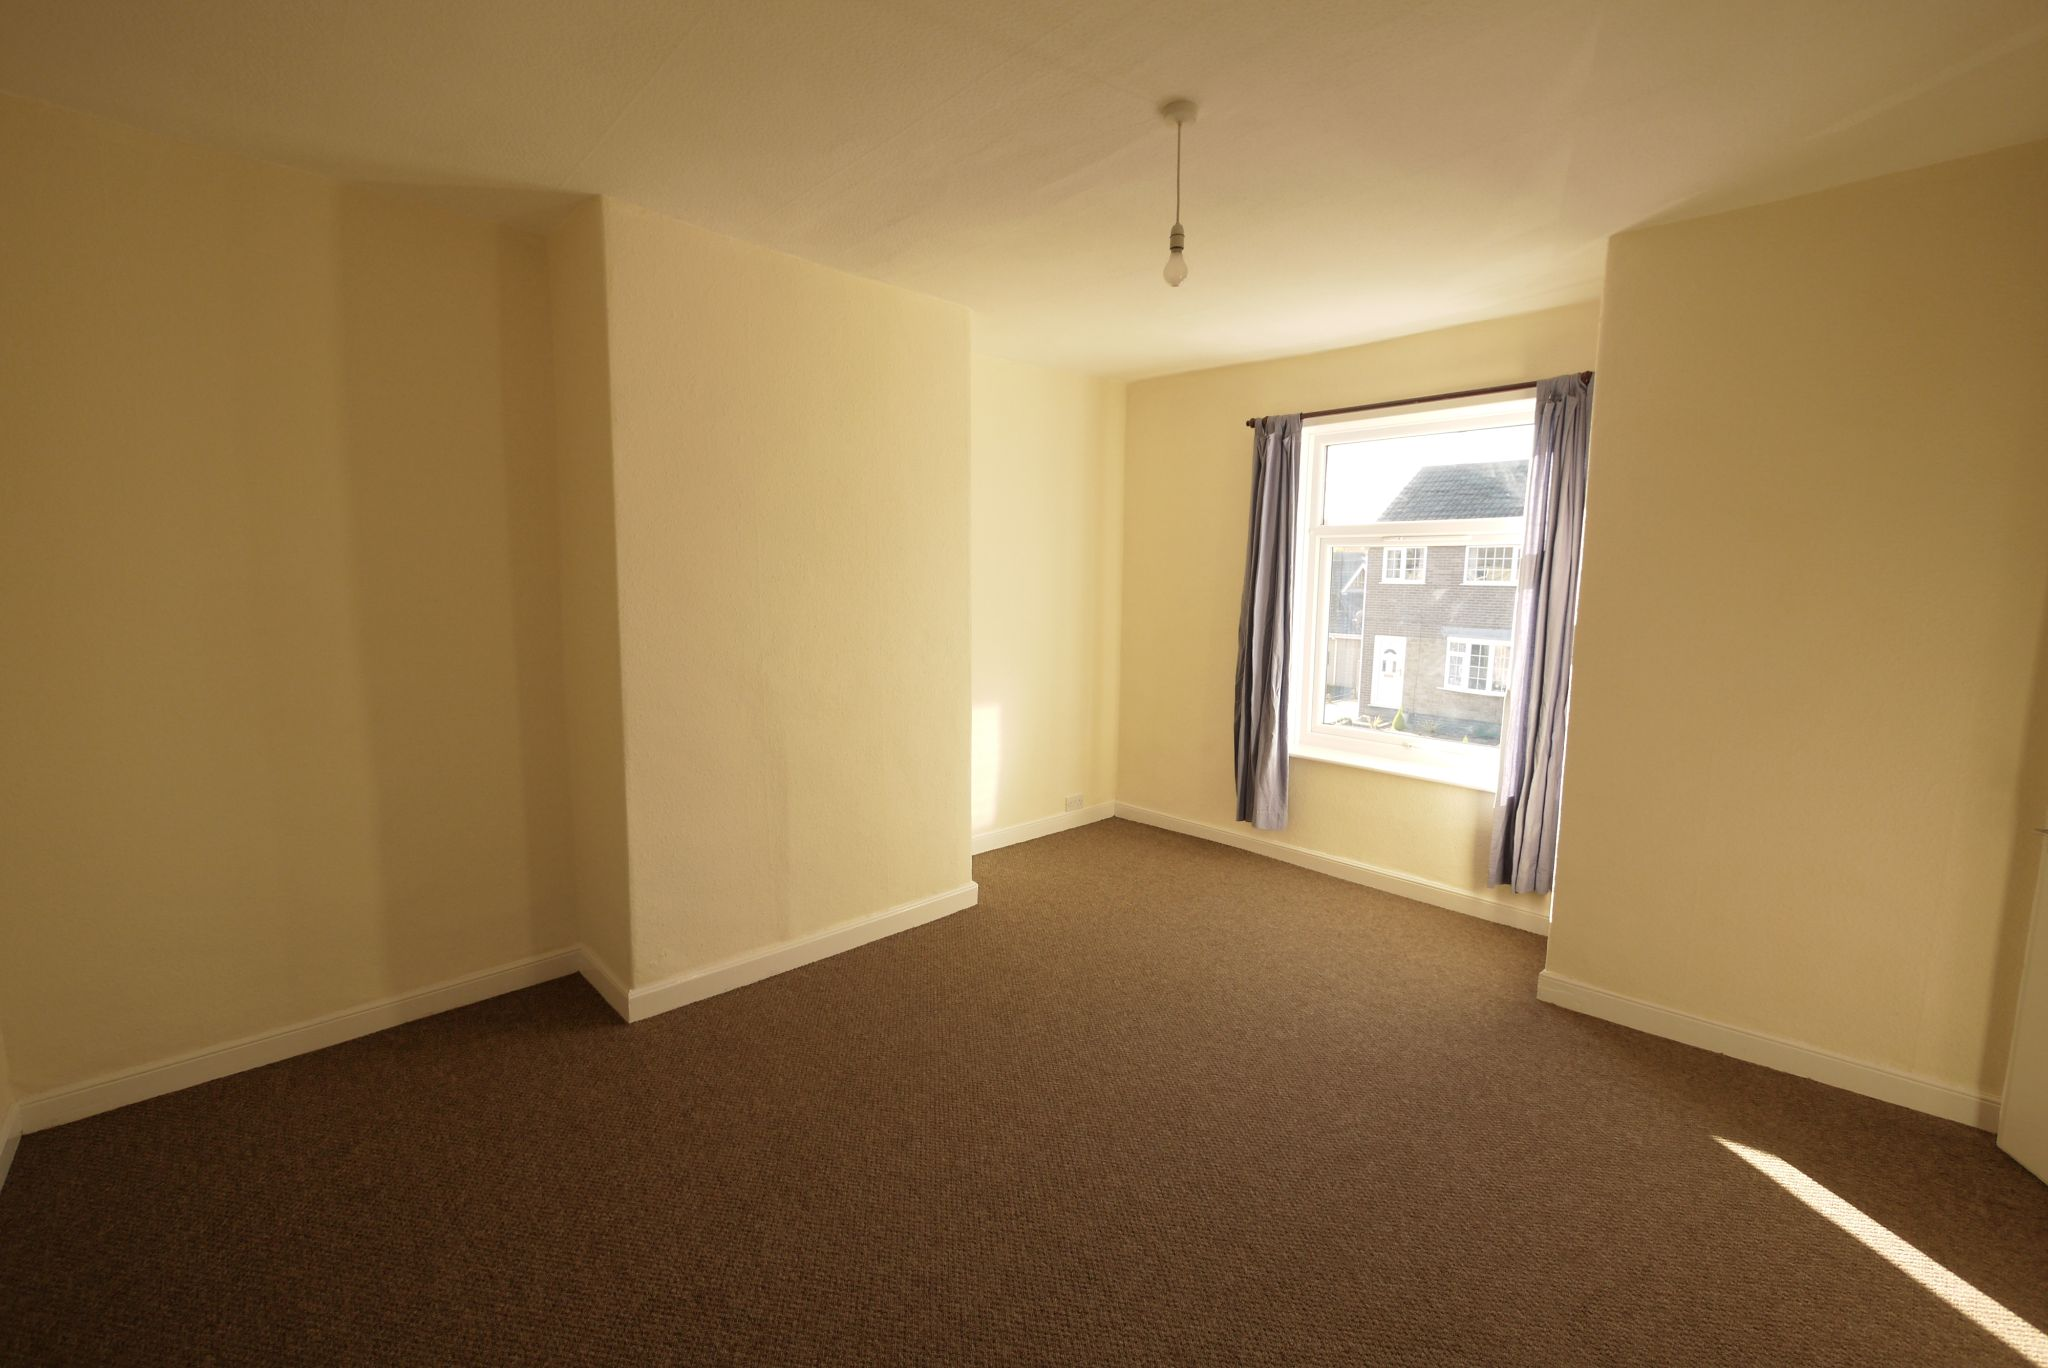 1 bedroom mid terraced house Let in Brighouse - Bedroom.